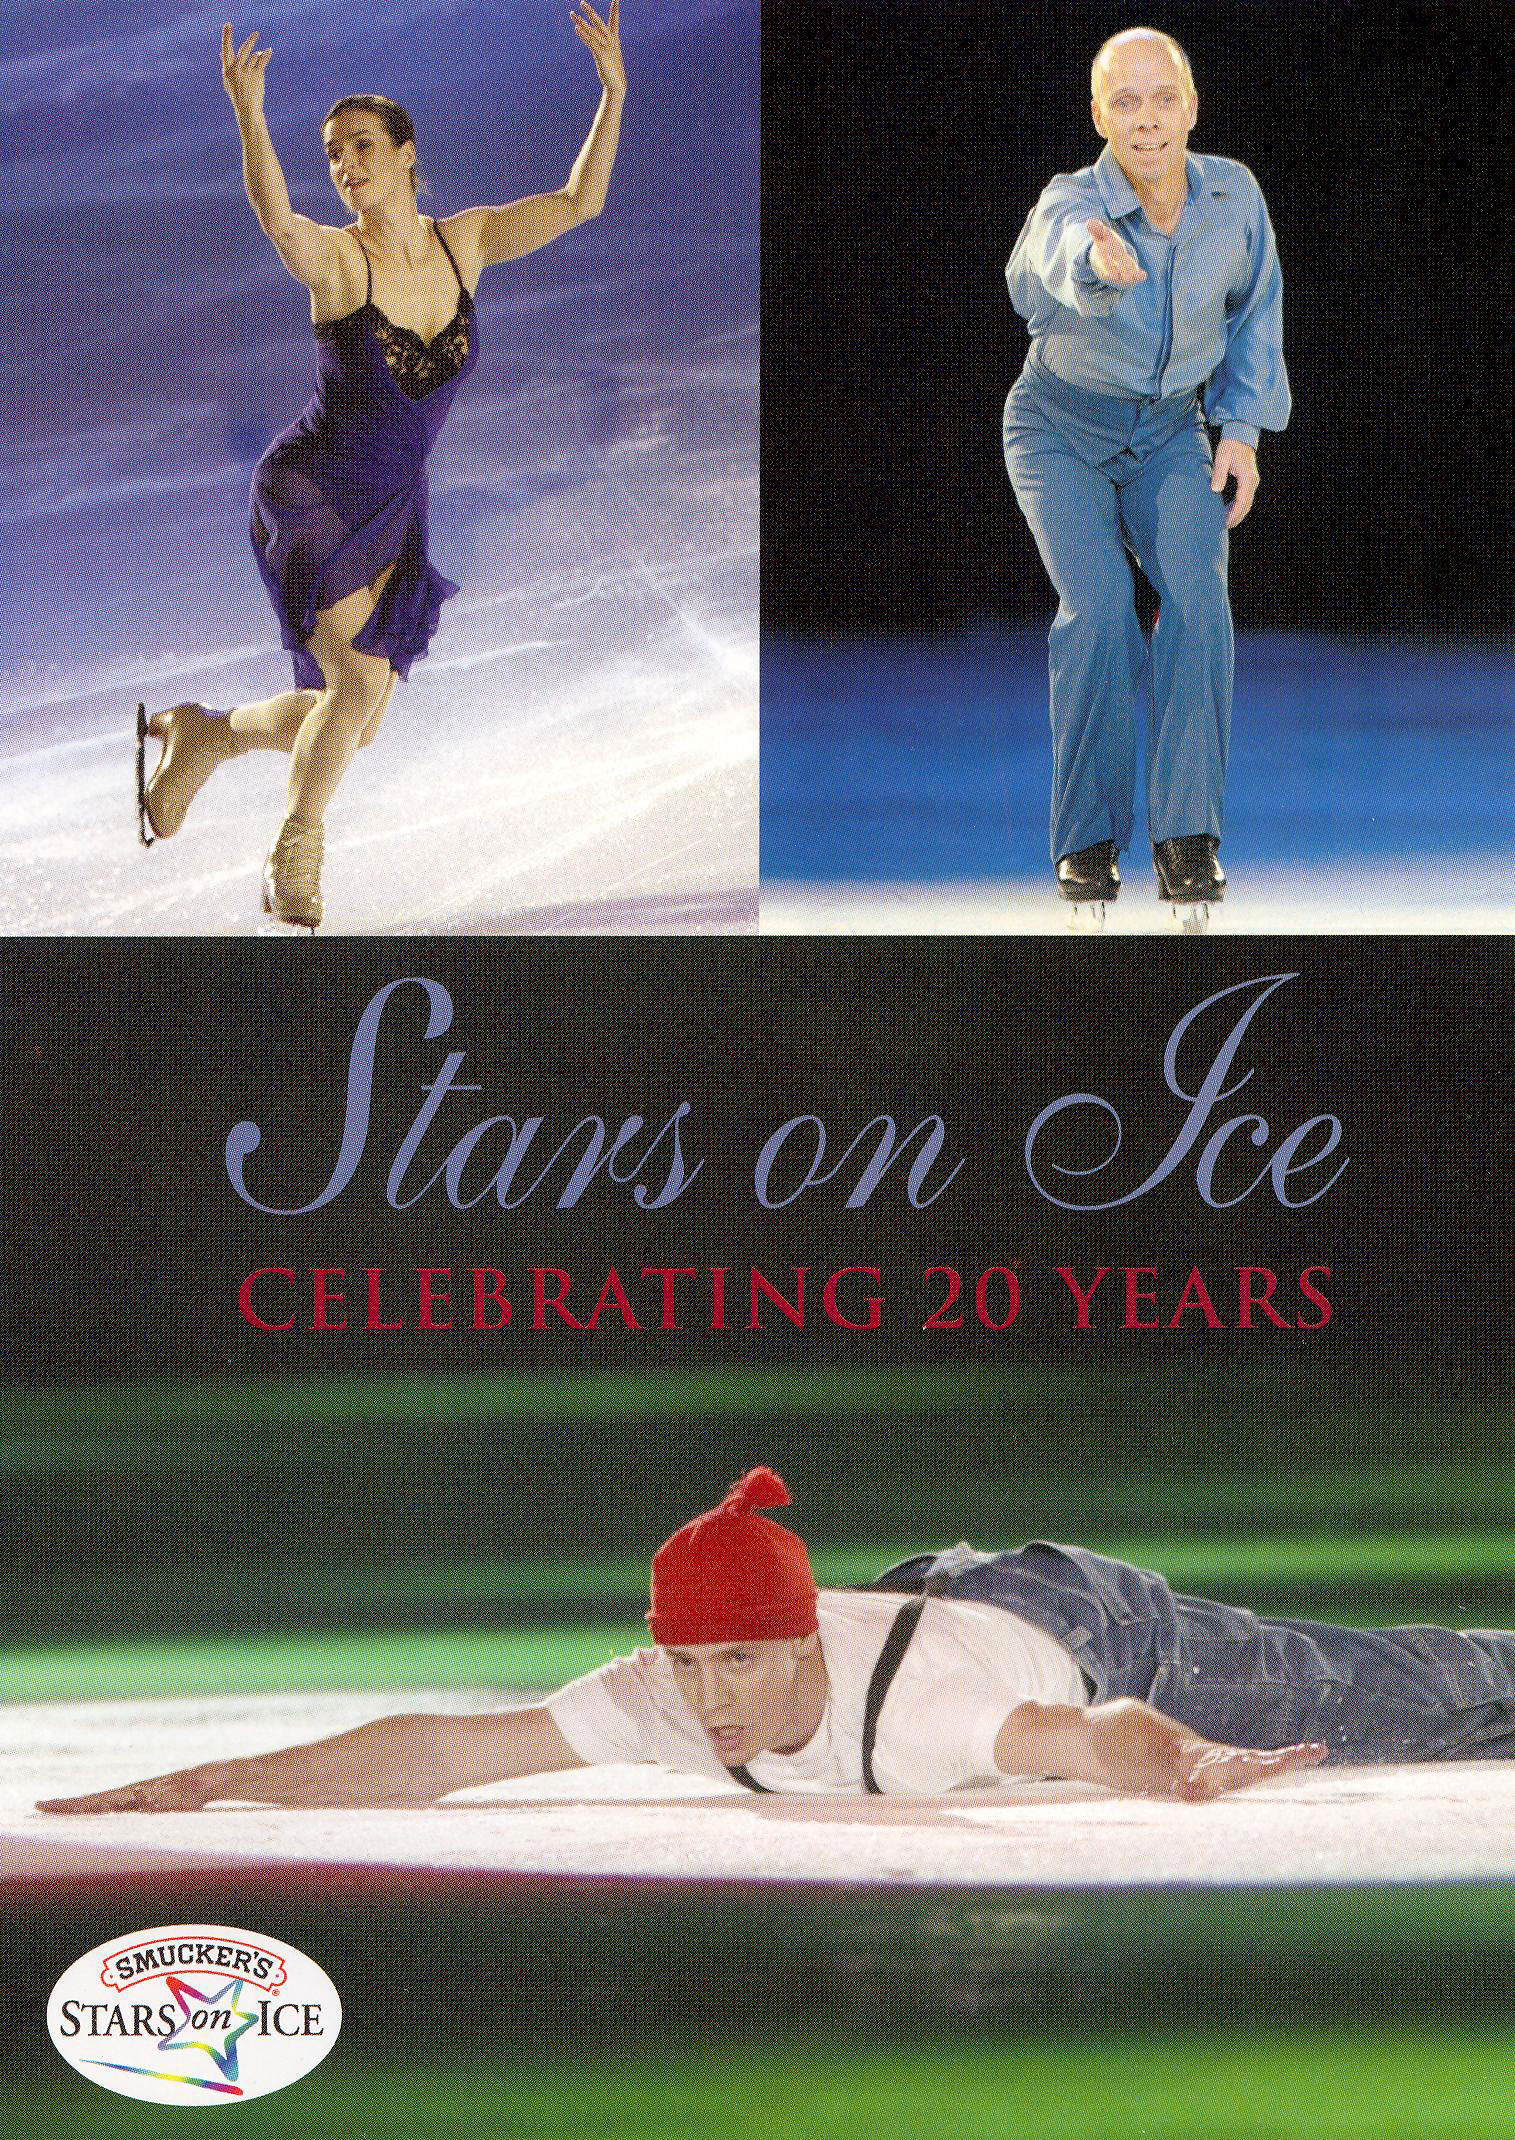 Stars on Ice: Celebrating 20 Years, Vol. 2